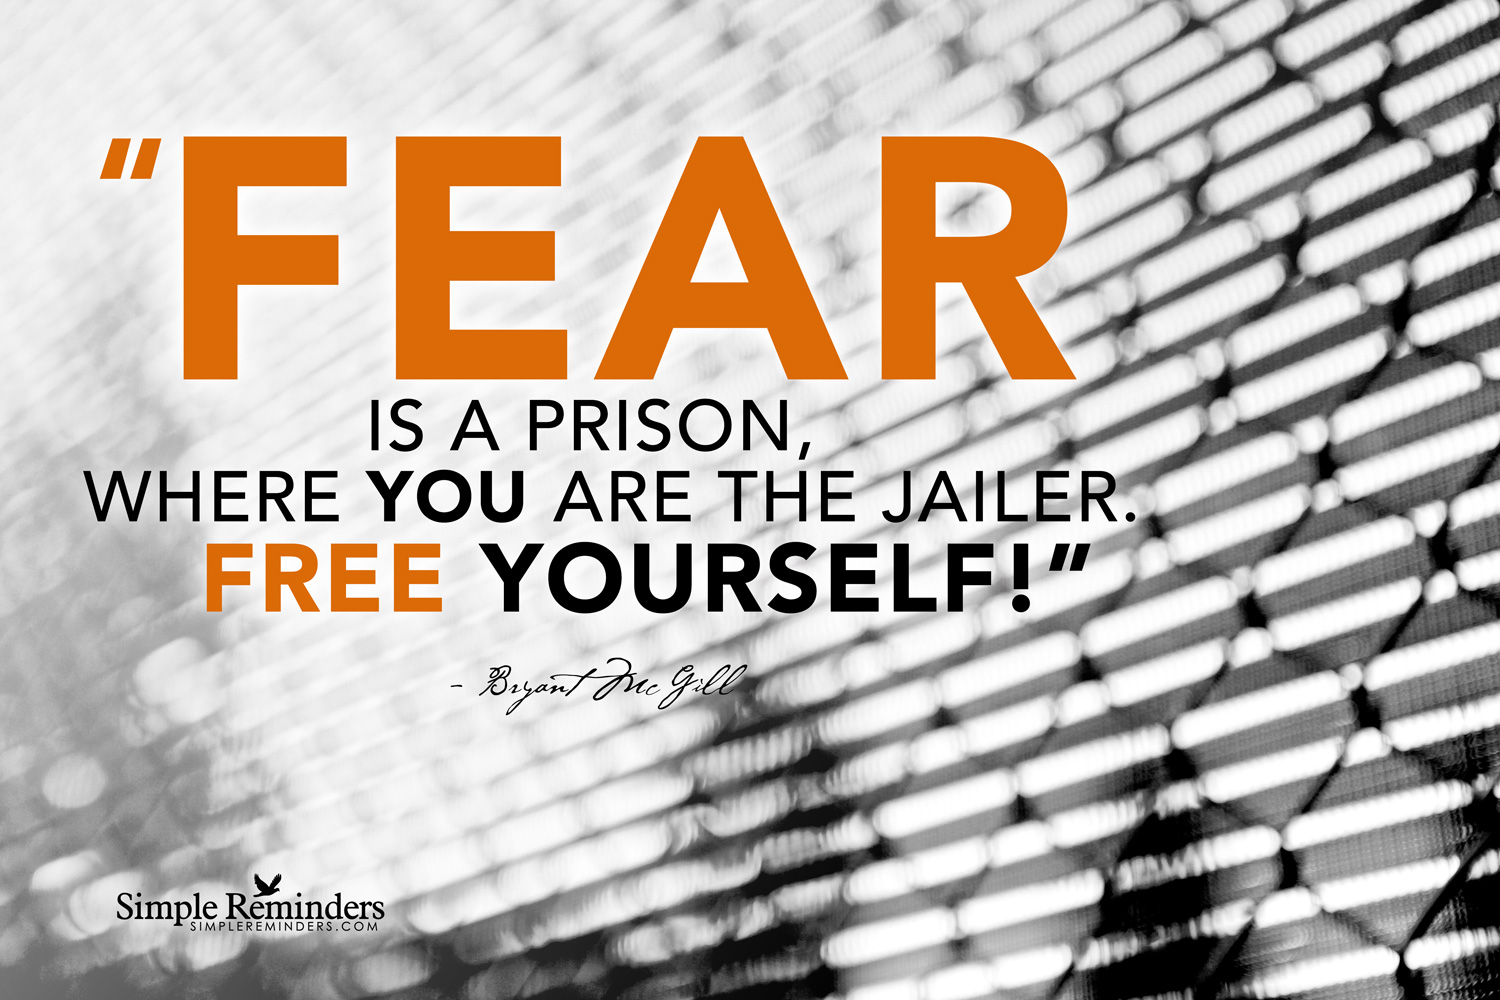 simplereminders.com-fear-prison-mcgill-withtext-displayres